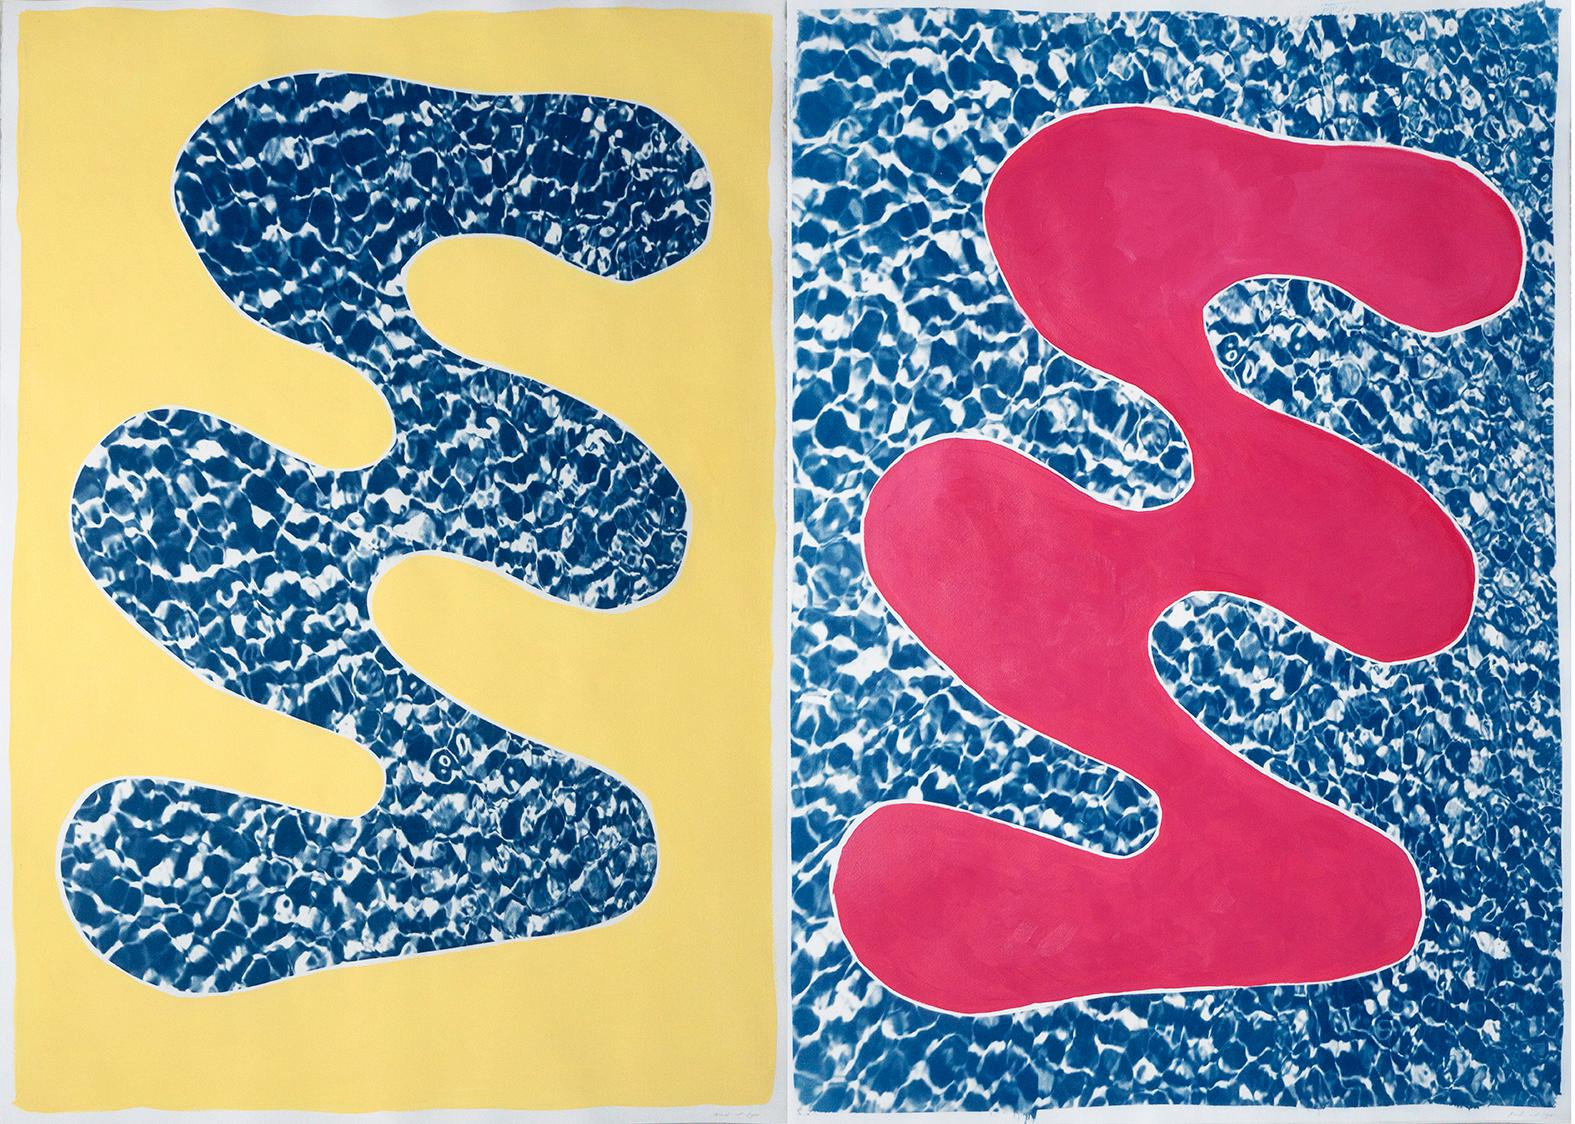 Pool Water Brushstroke Diptych, Cyanotype Print and Acrylic Painting on Paper